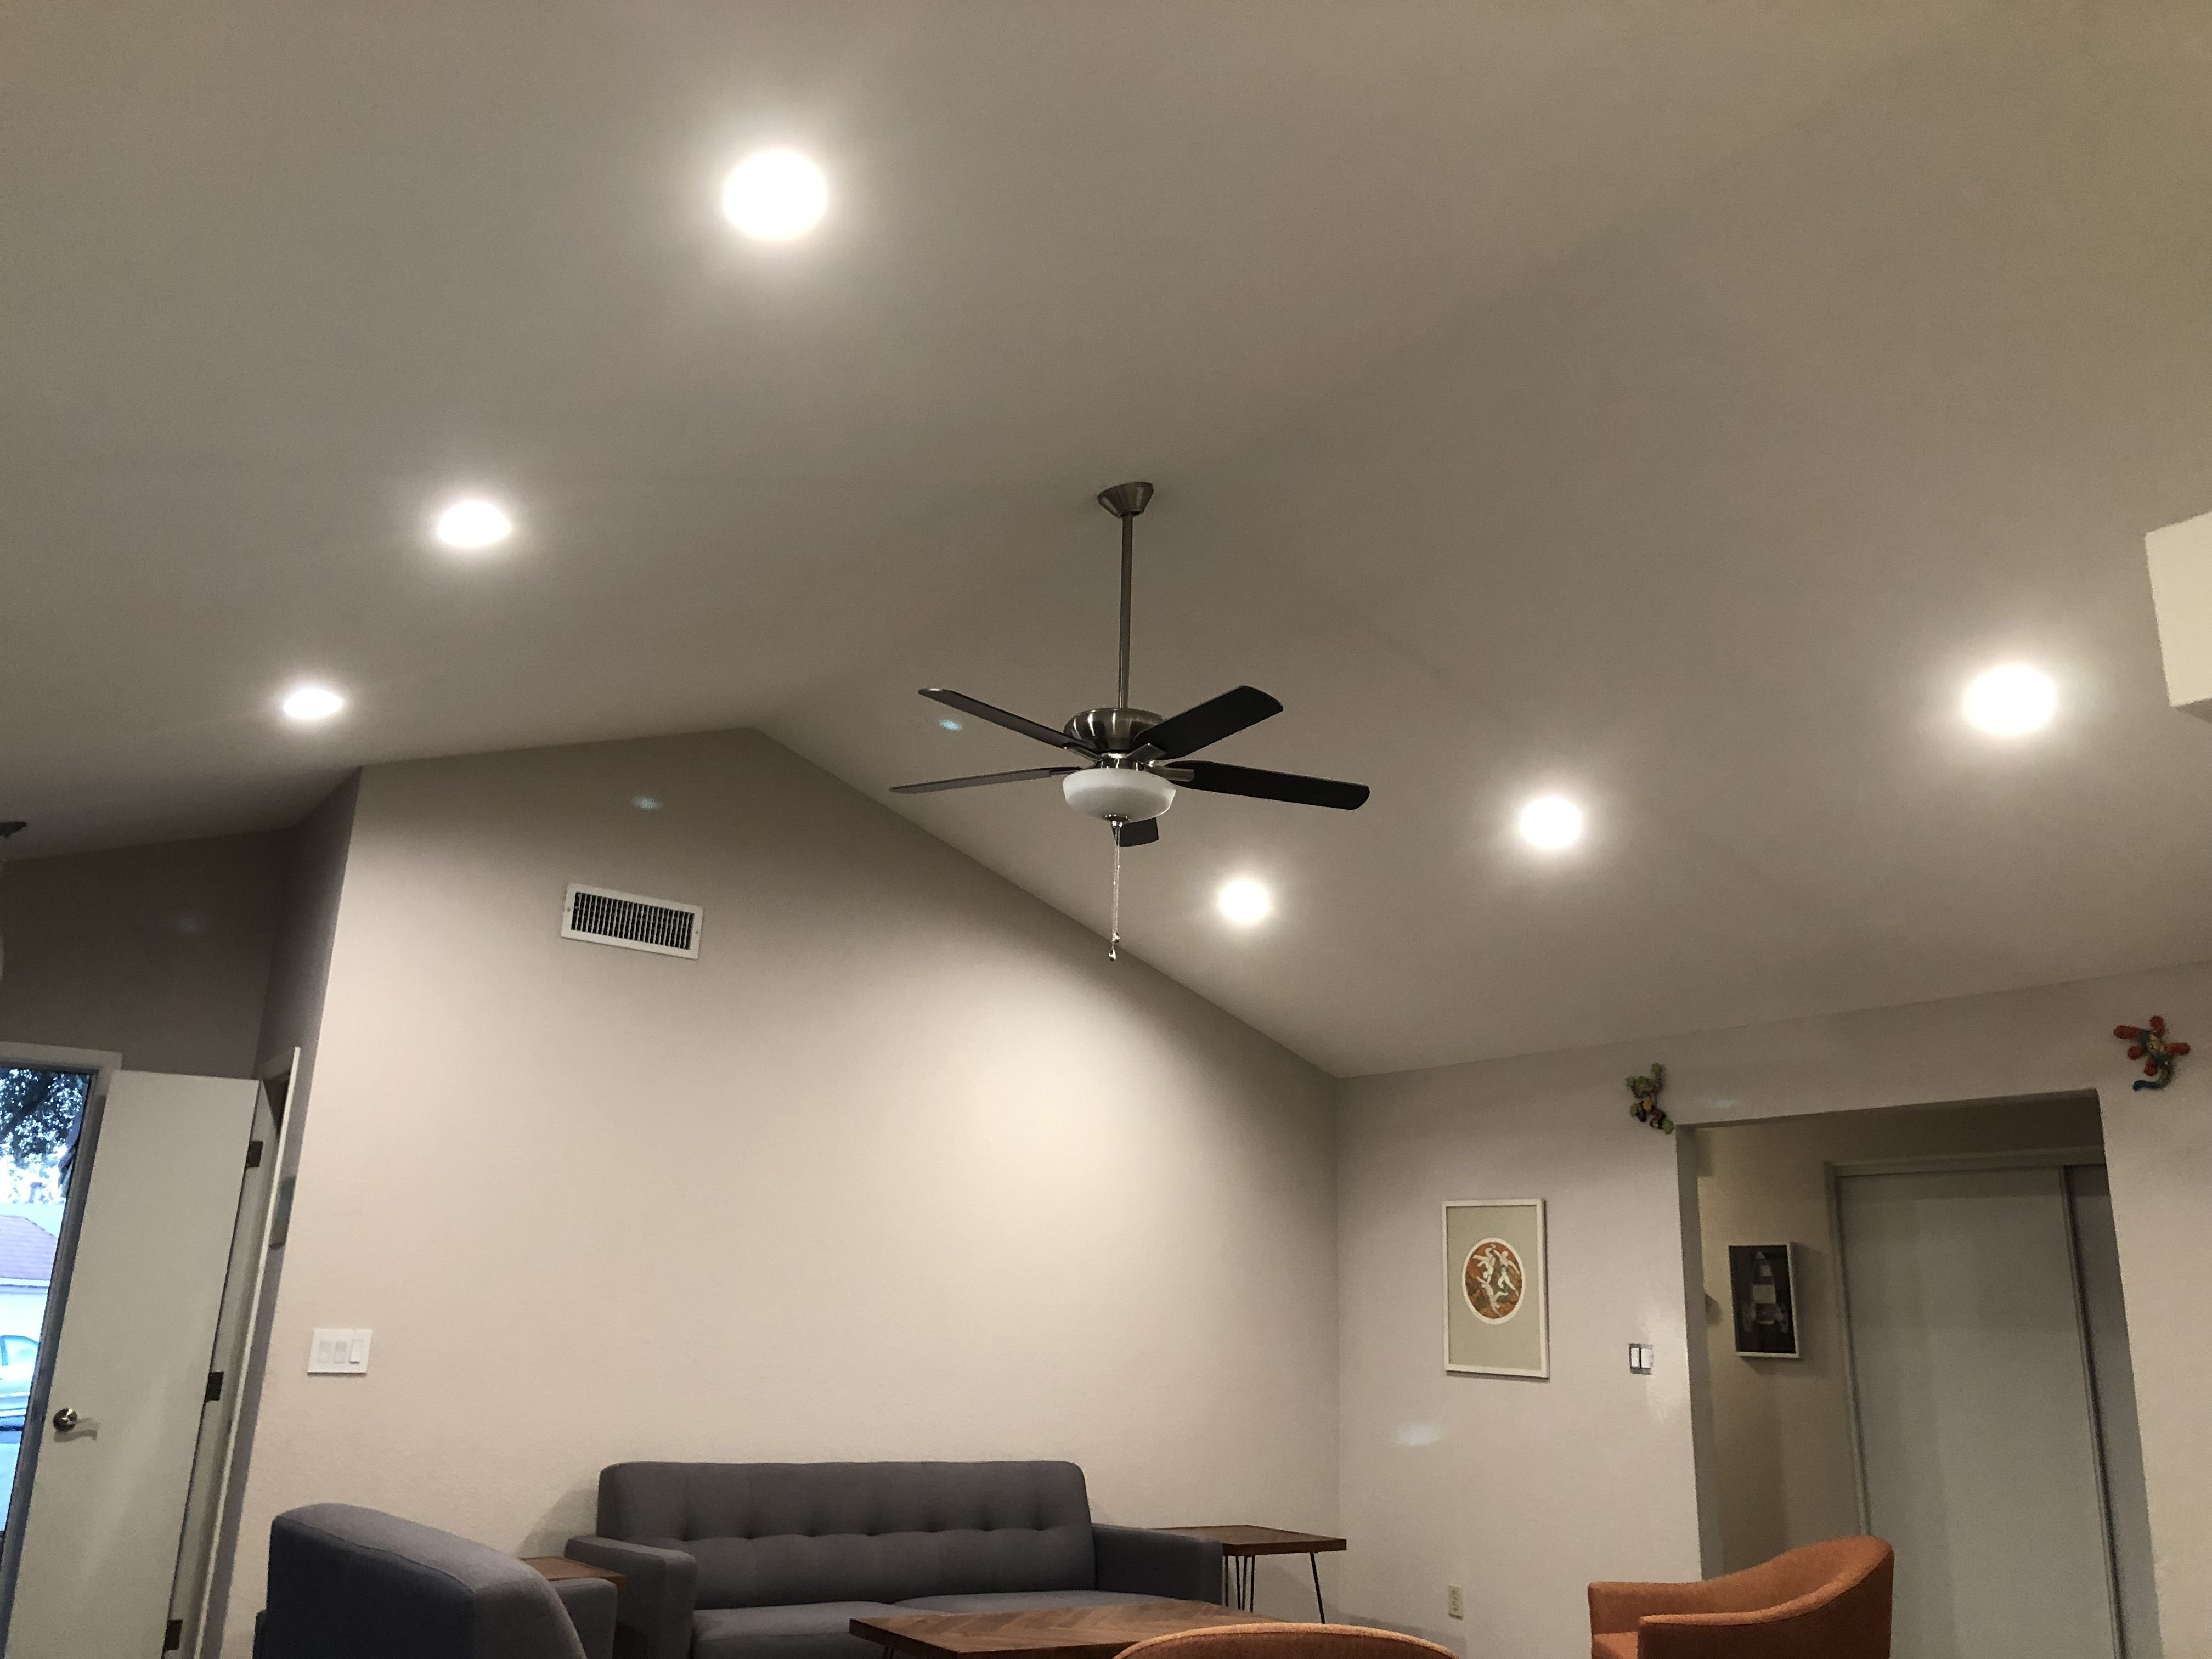 6x 6 Inch Led S On A New 3 Way Switch And Dimmer Recessed